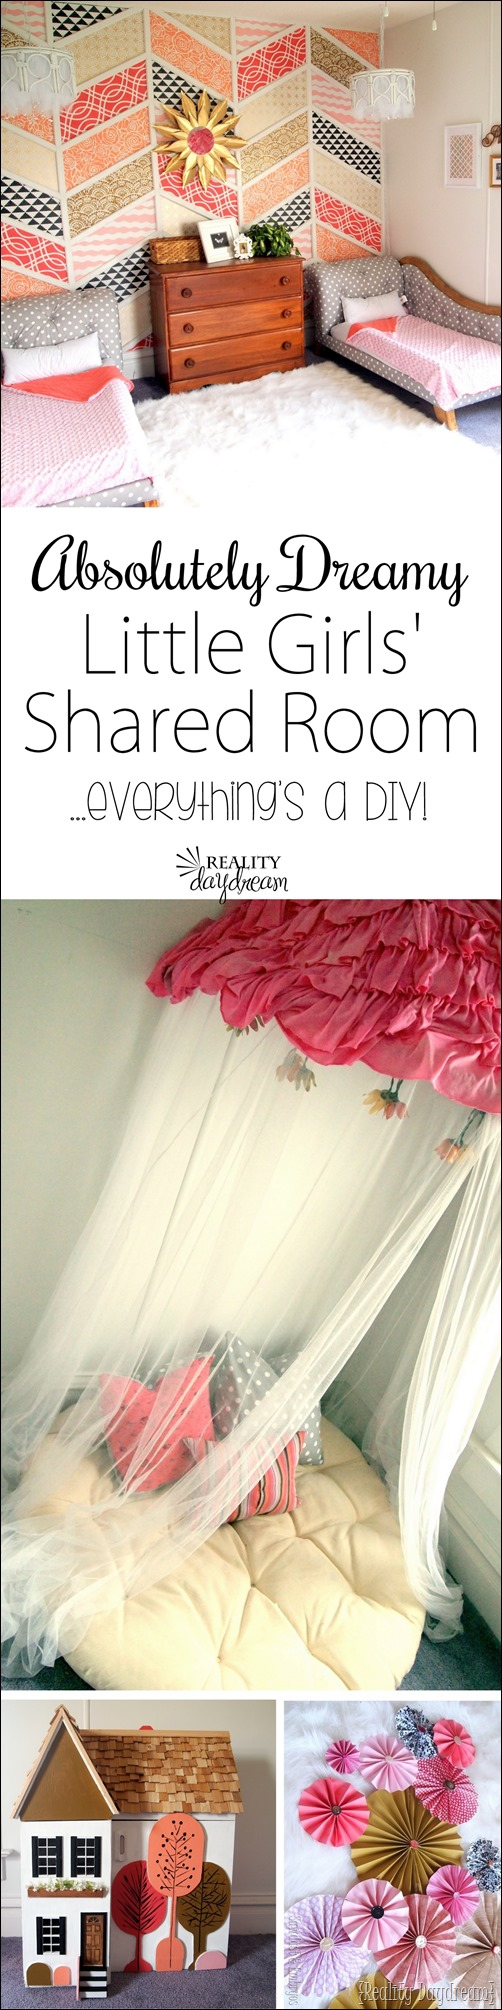 So many unique DIY projects make up this gorgeous little girls' room reveal! {Reality Daydream}